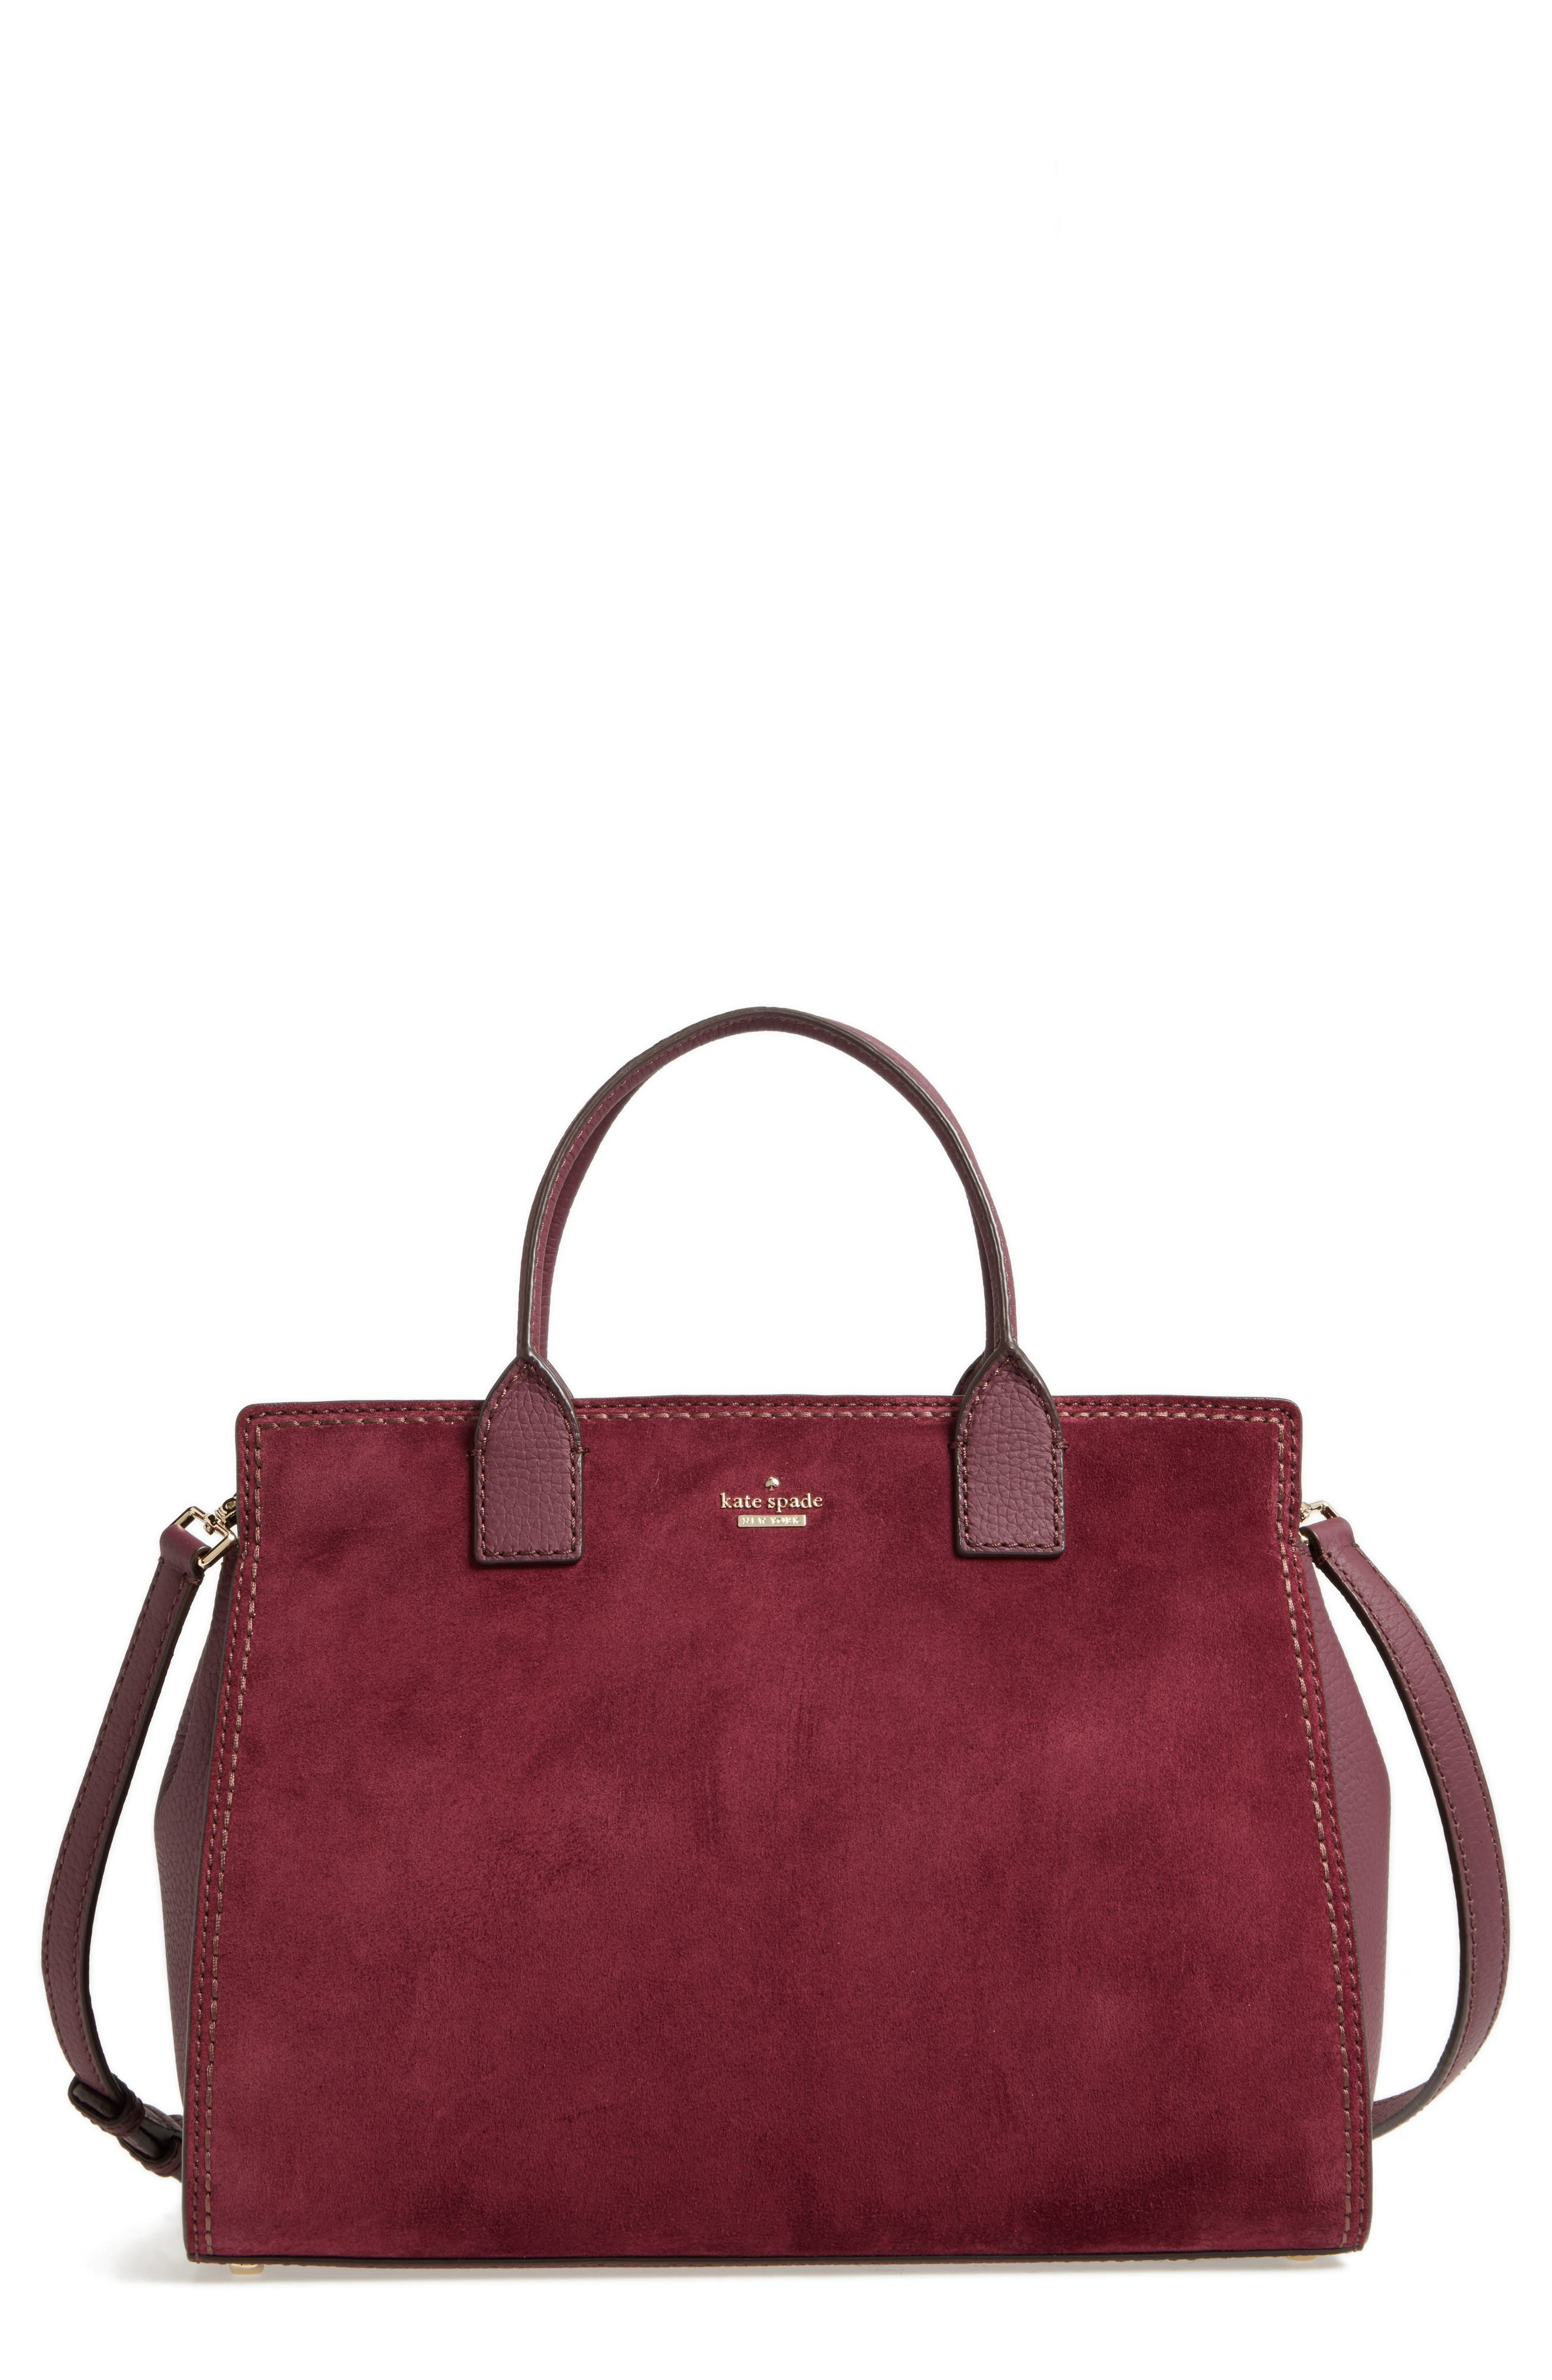 dunne lane lake suede satchel,                             Main thumbnail 1, color,                             Deep Wine